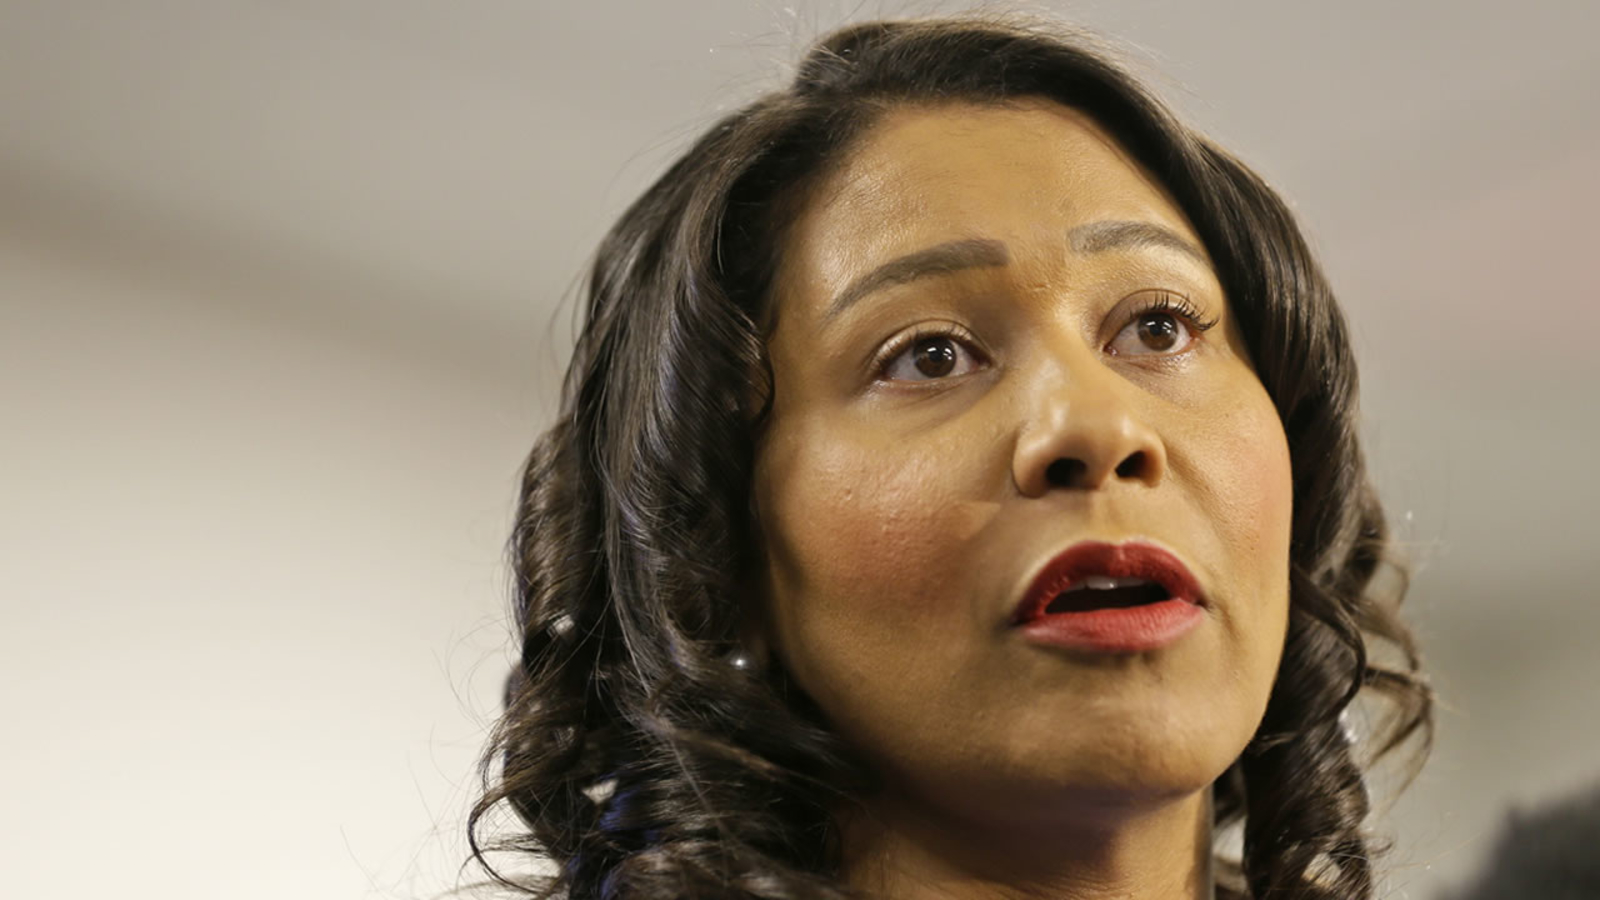 SF Mayor London Breed tests negative for COVID-19 after being exposed to virus at event